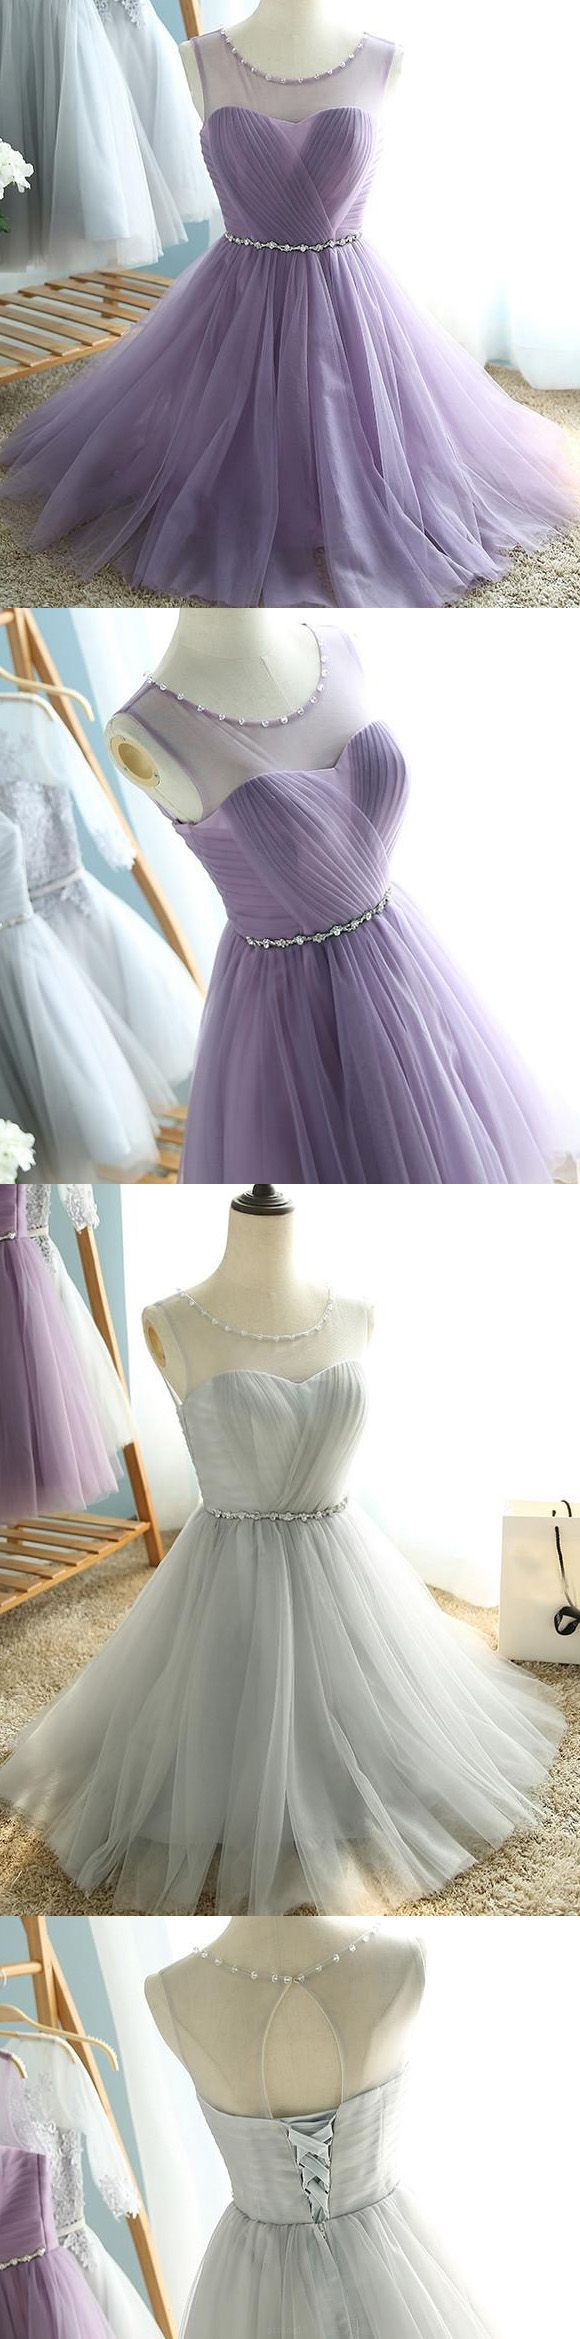 Discount light blue party prom dress beautiful short homecoming